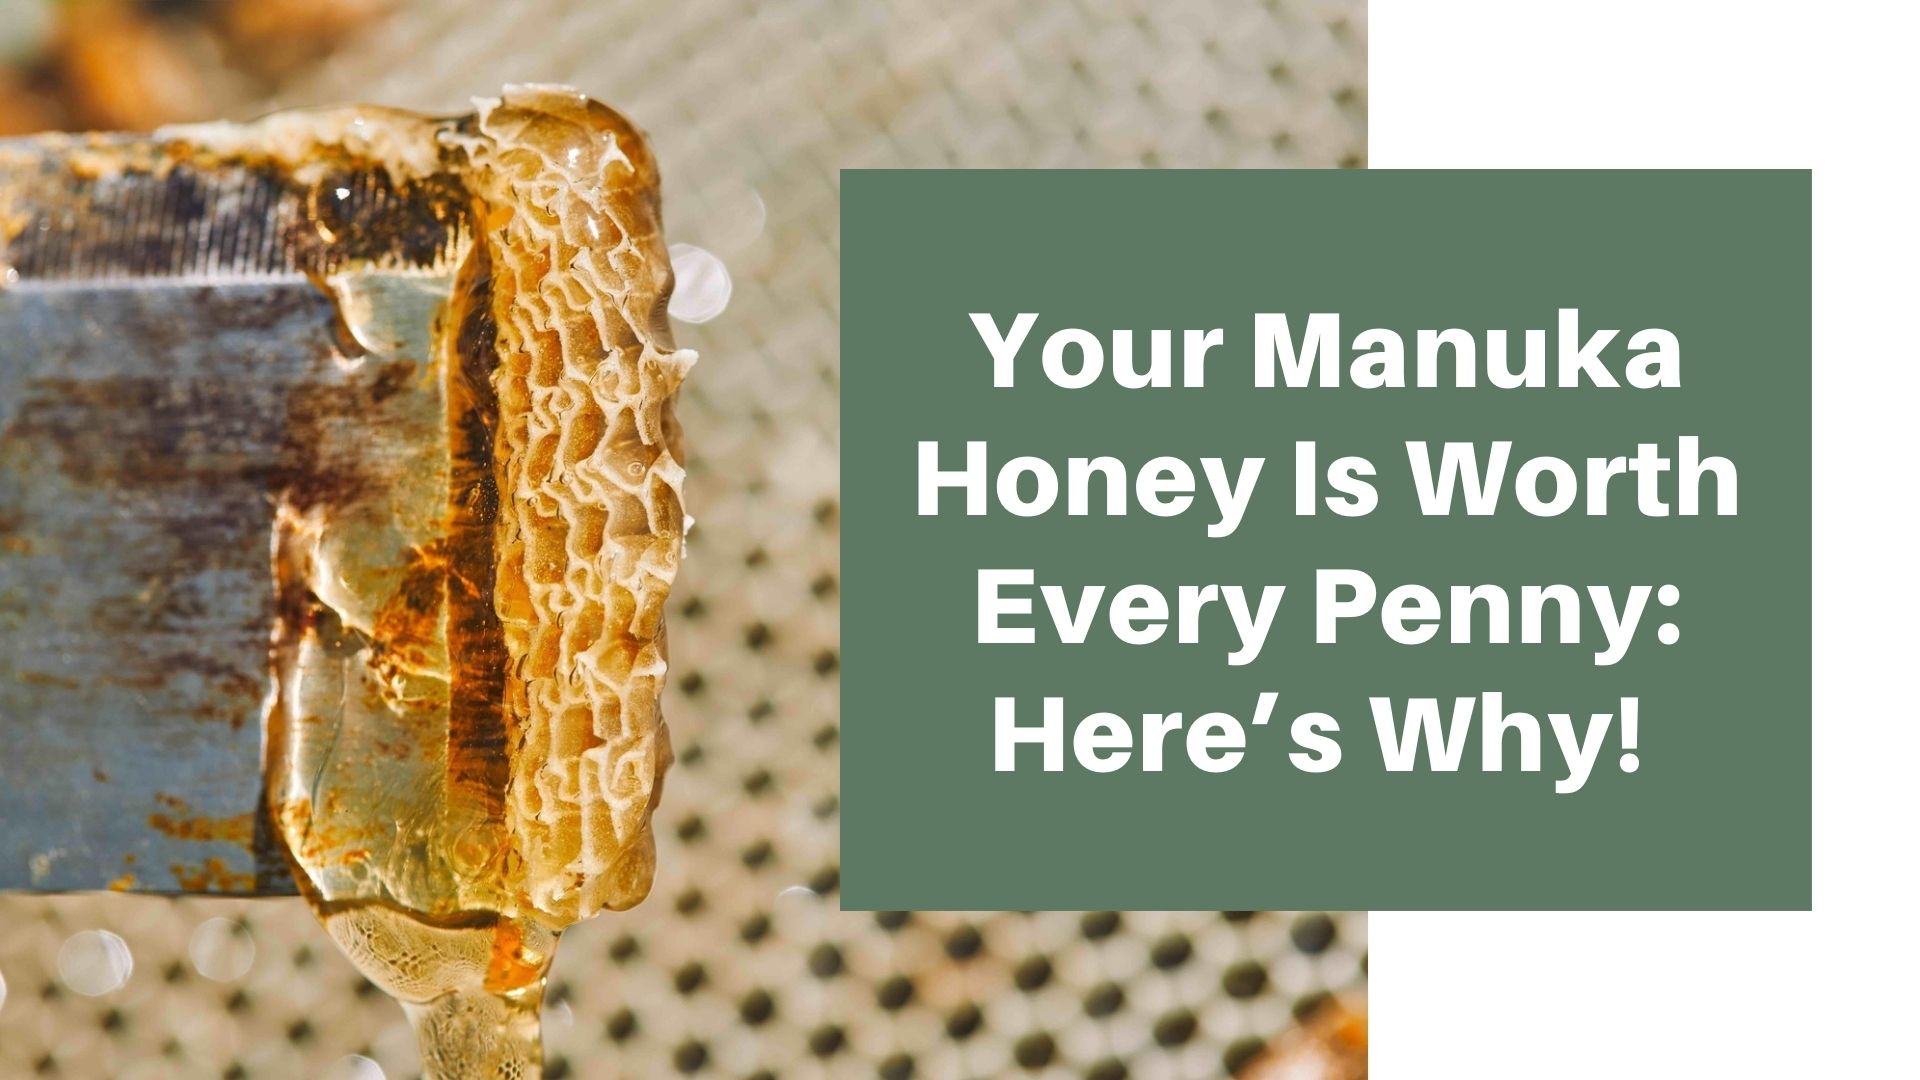 Your Manuka Honey Is Worth Every Penny: Here's Why!